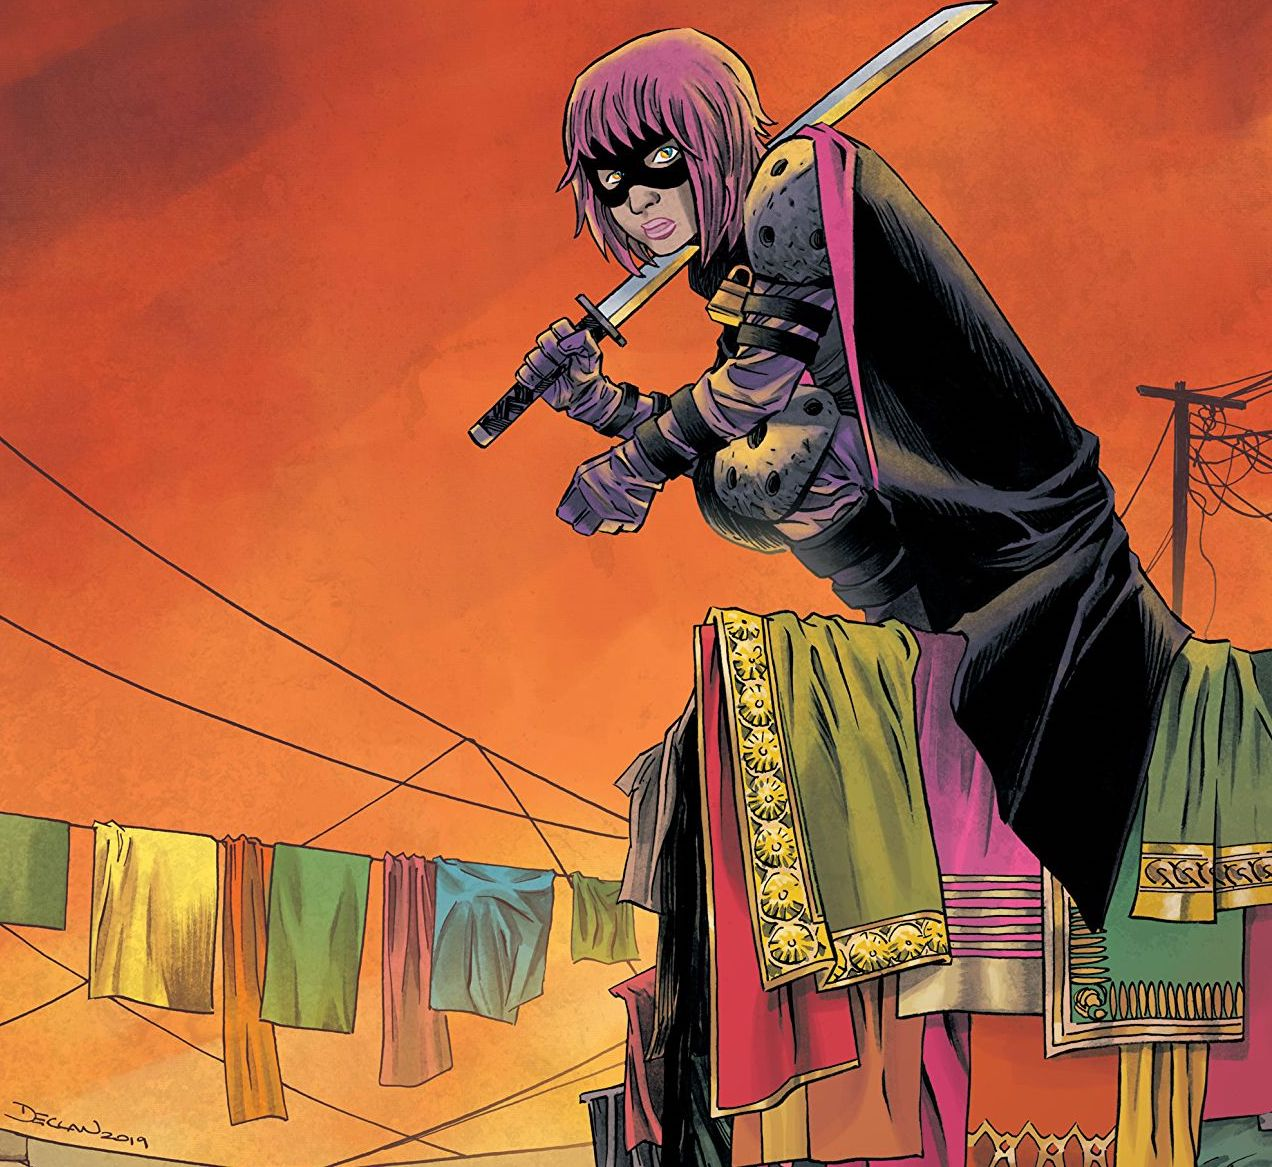 Hit-Girl Vol. 6: In India Review